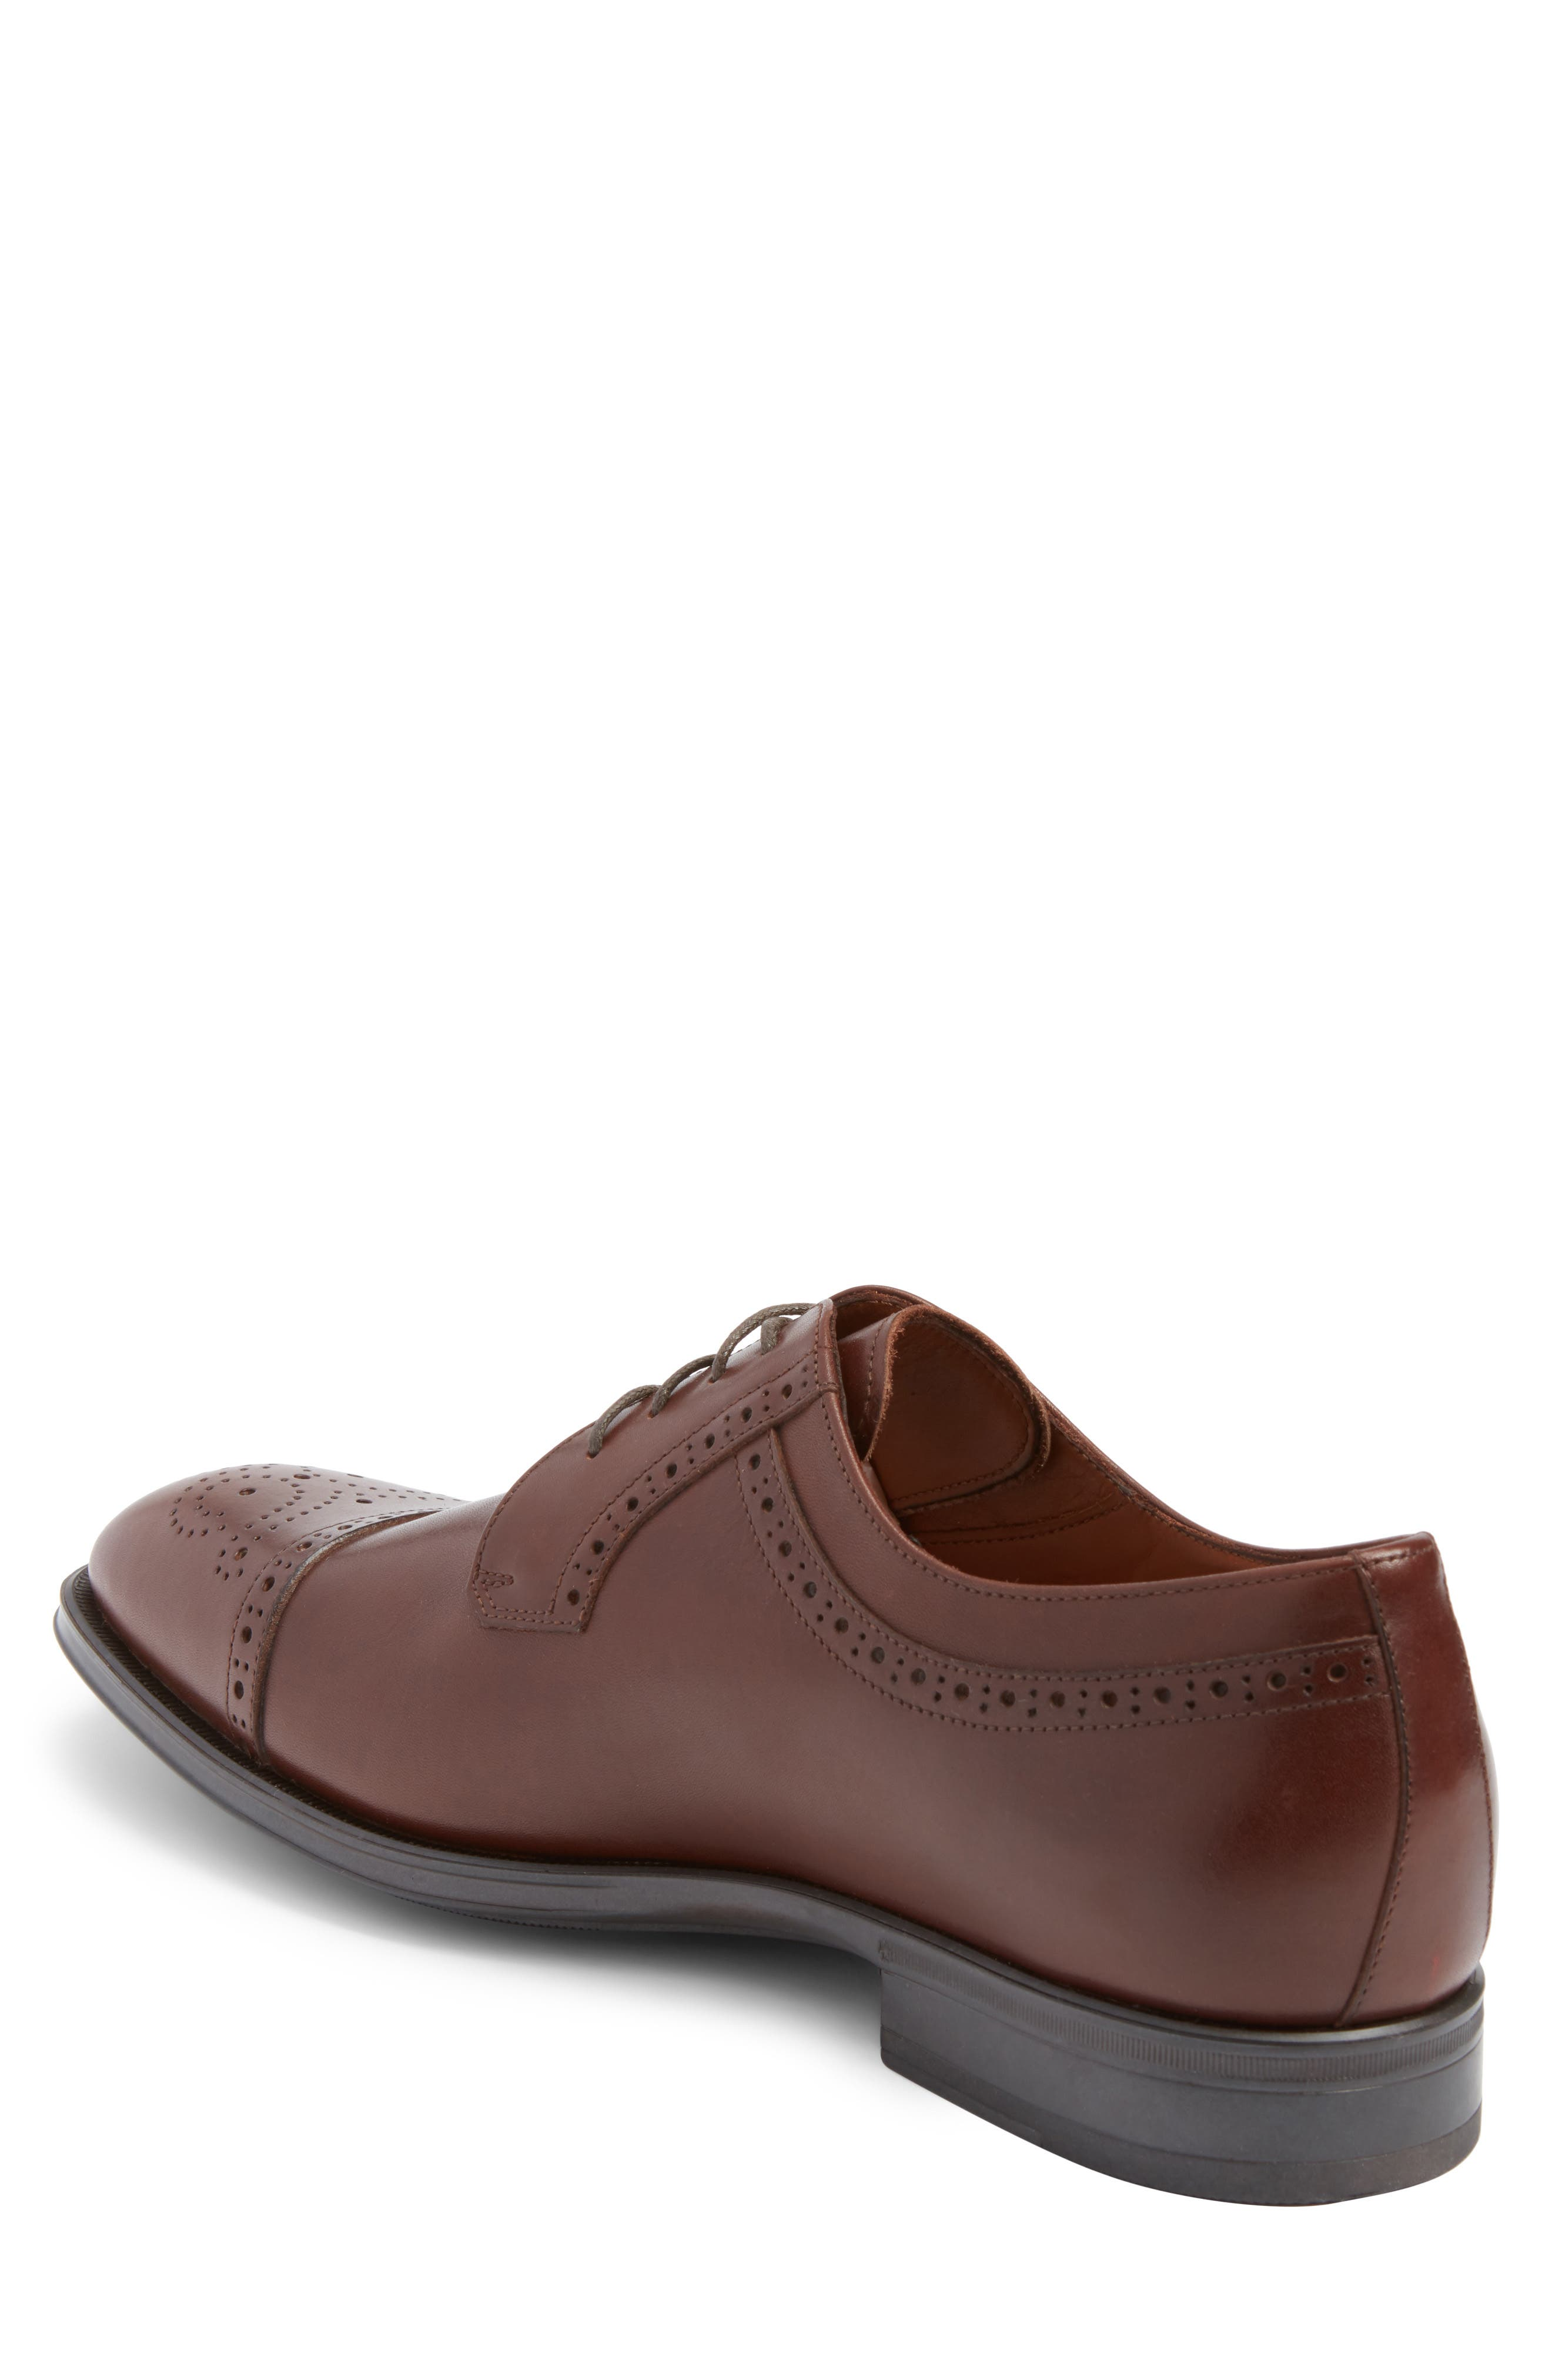 Duke Medallion Toe Derby,                             Alternate thumbnail 2, color,                             Burnished Cognac Leather